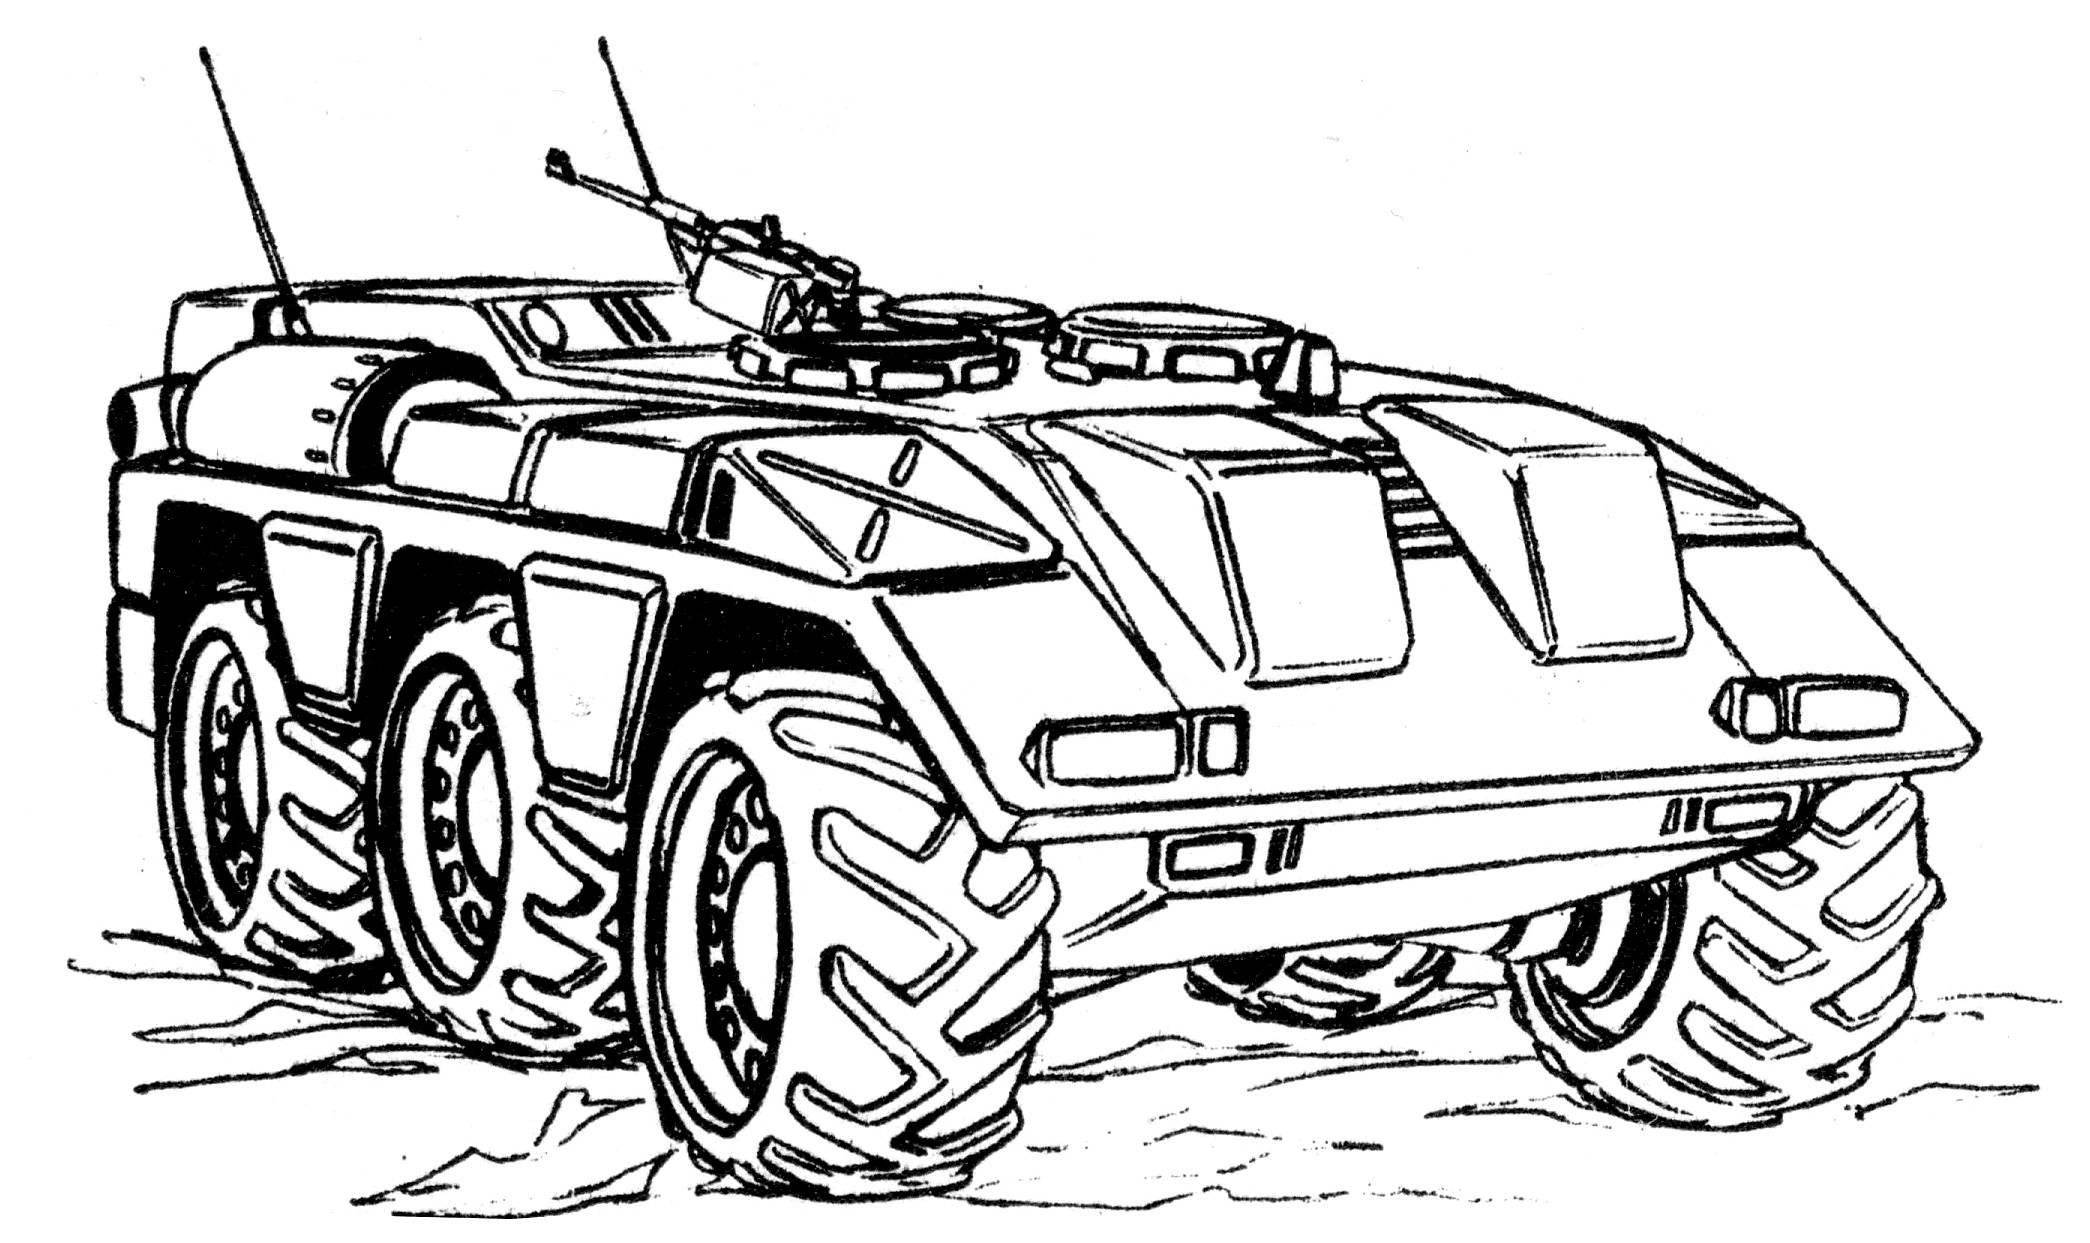 LACV-60 (M1100) Light Cavalry Vehicle Armored Security Vehicle 1